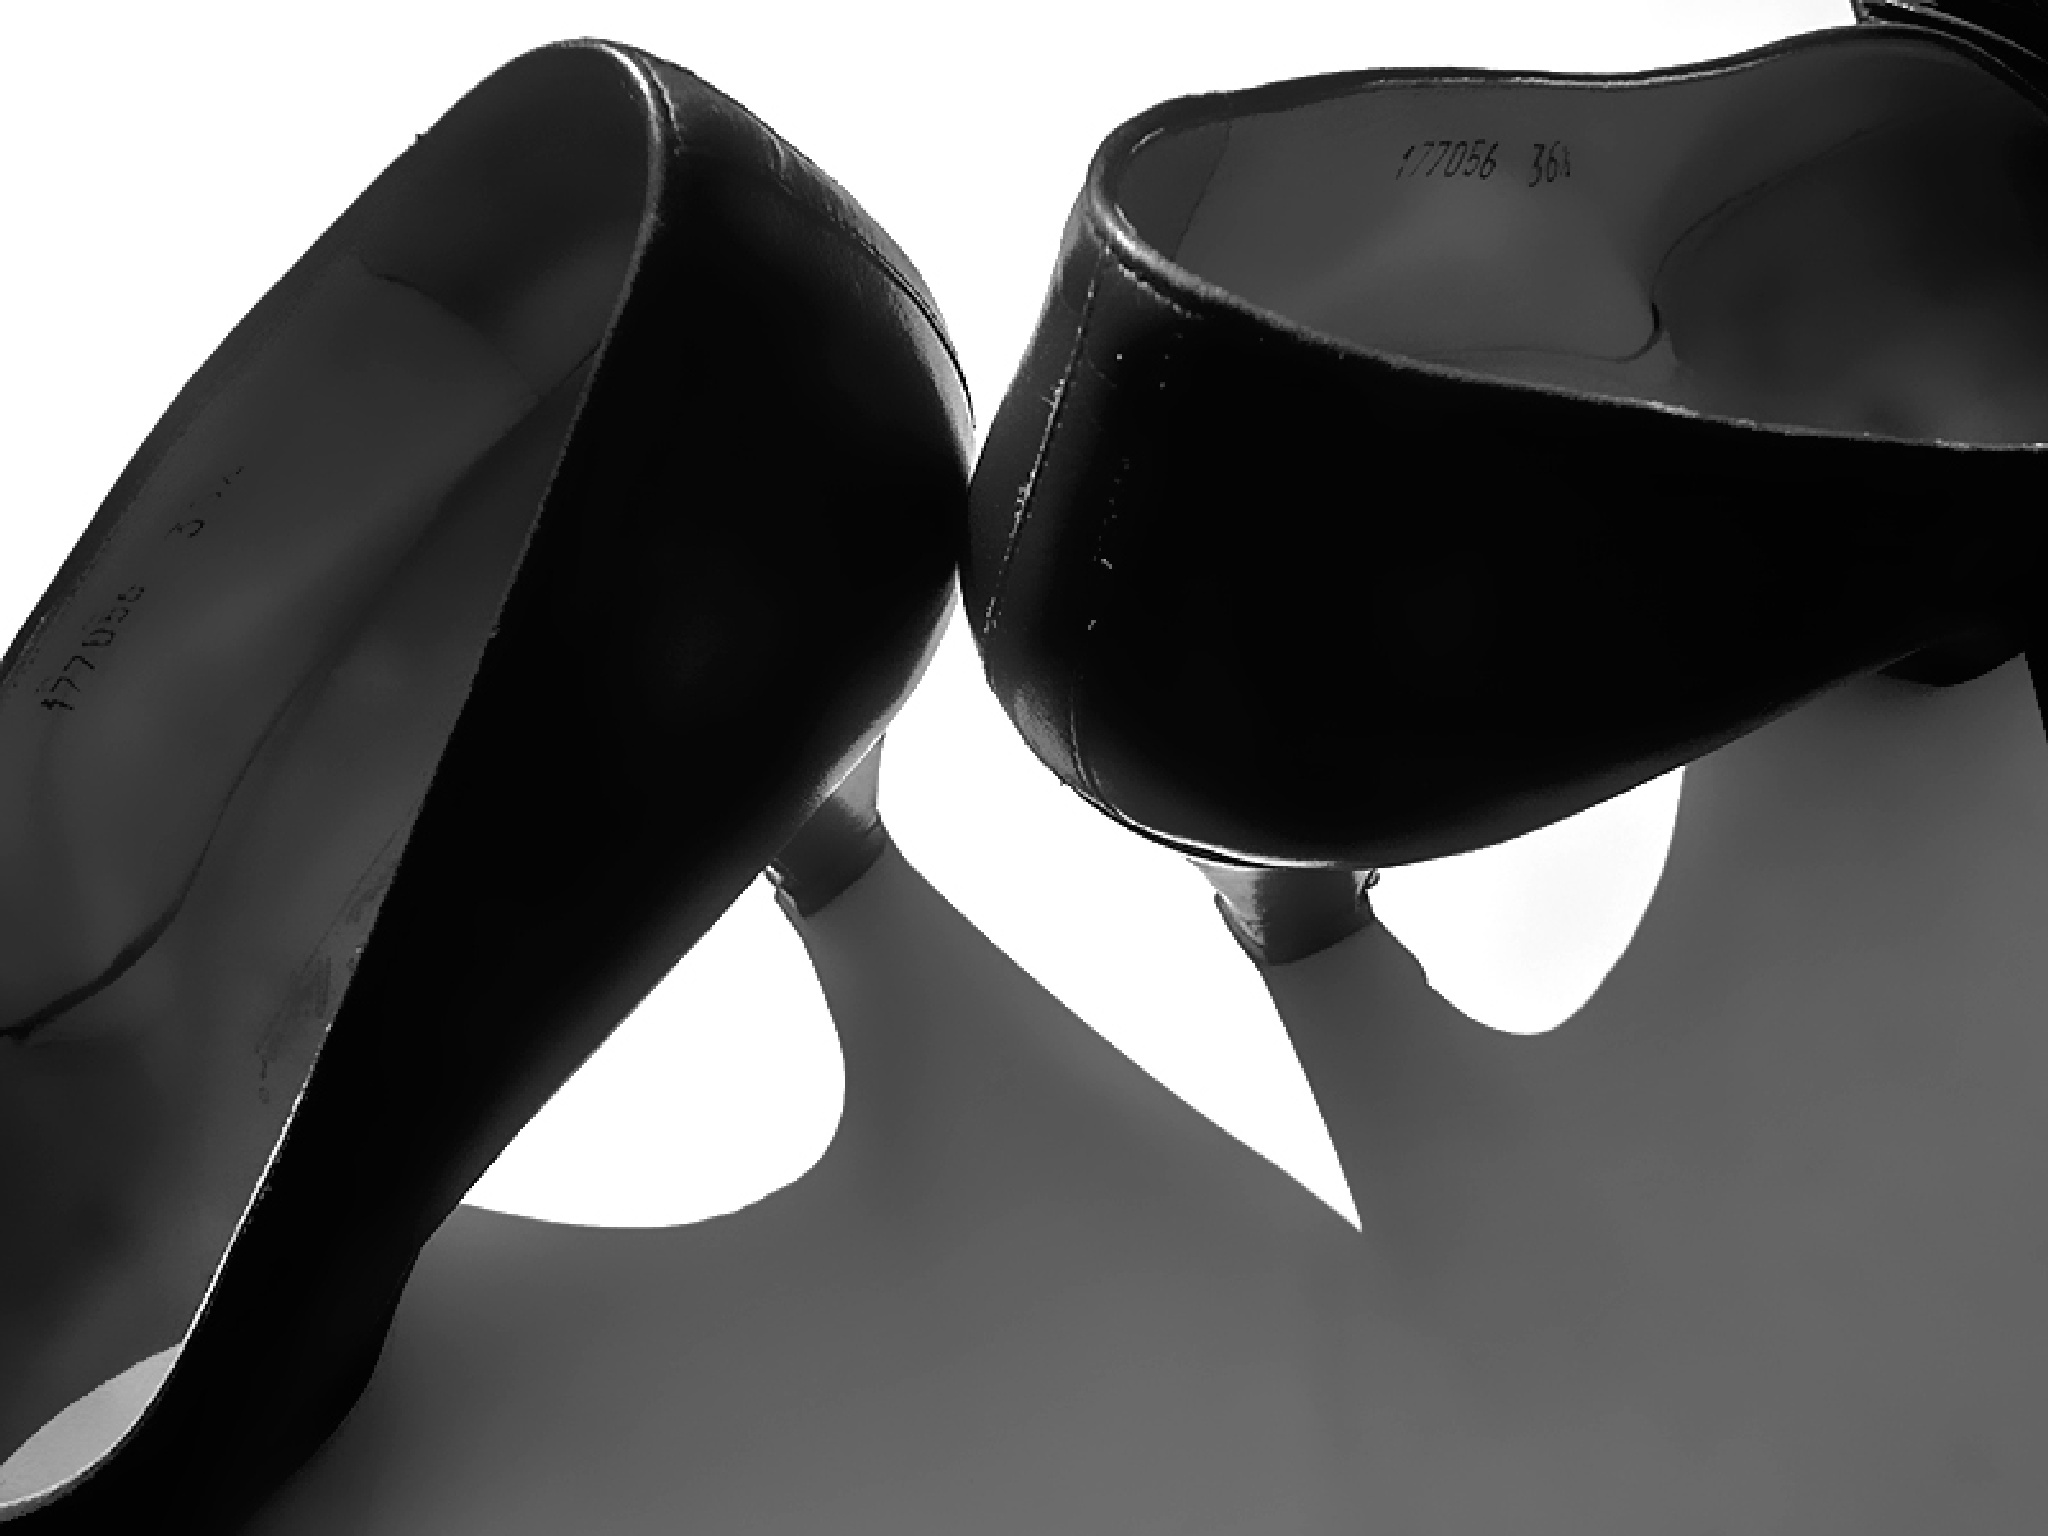 Shoes by Gernot Schwarz